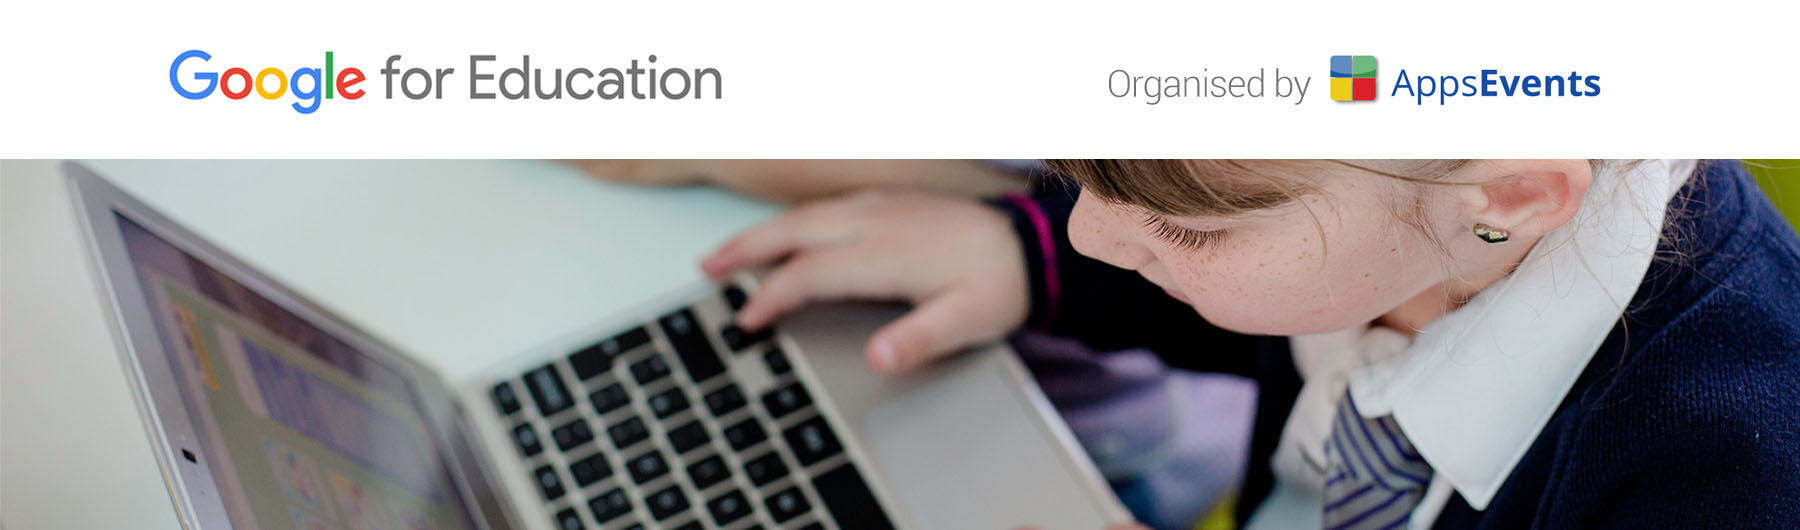 Explore and Network with Google for Education (Glasgow)